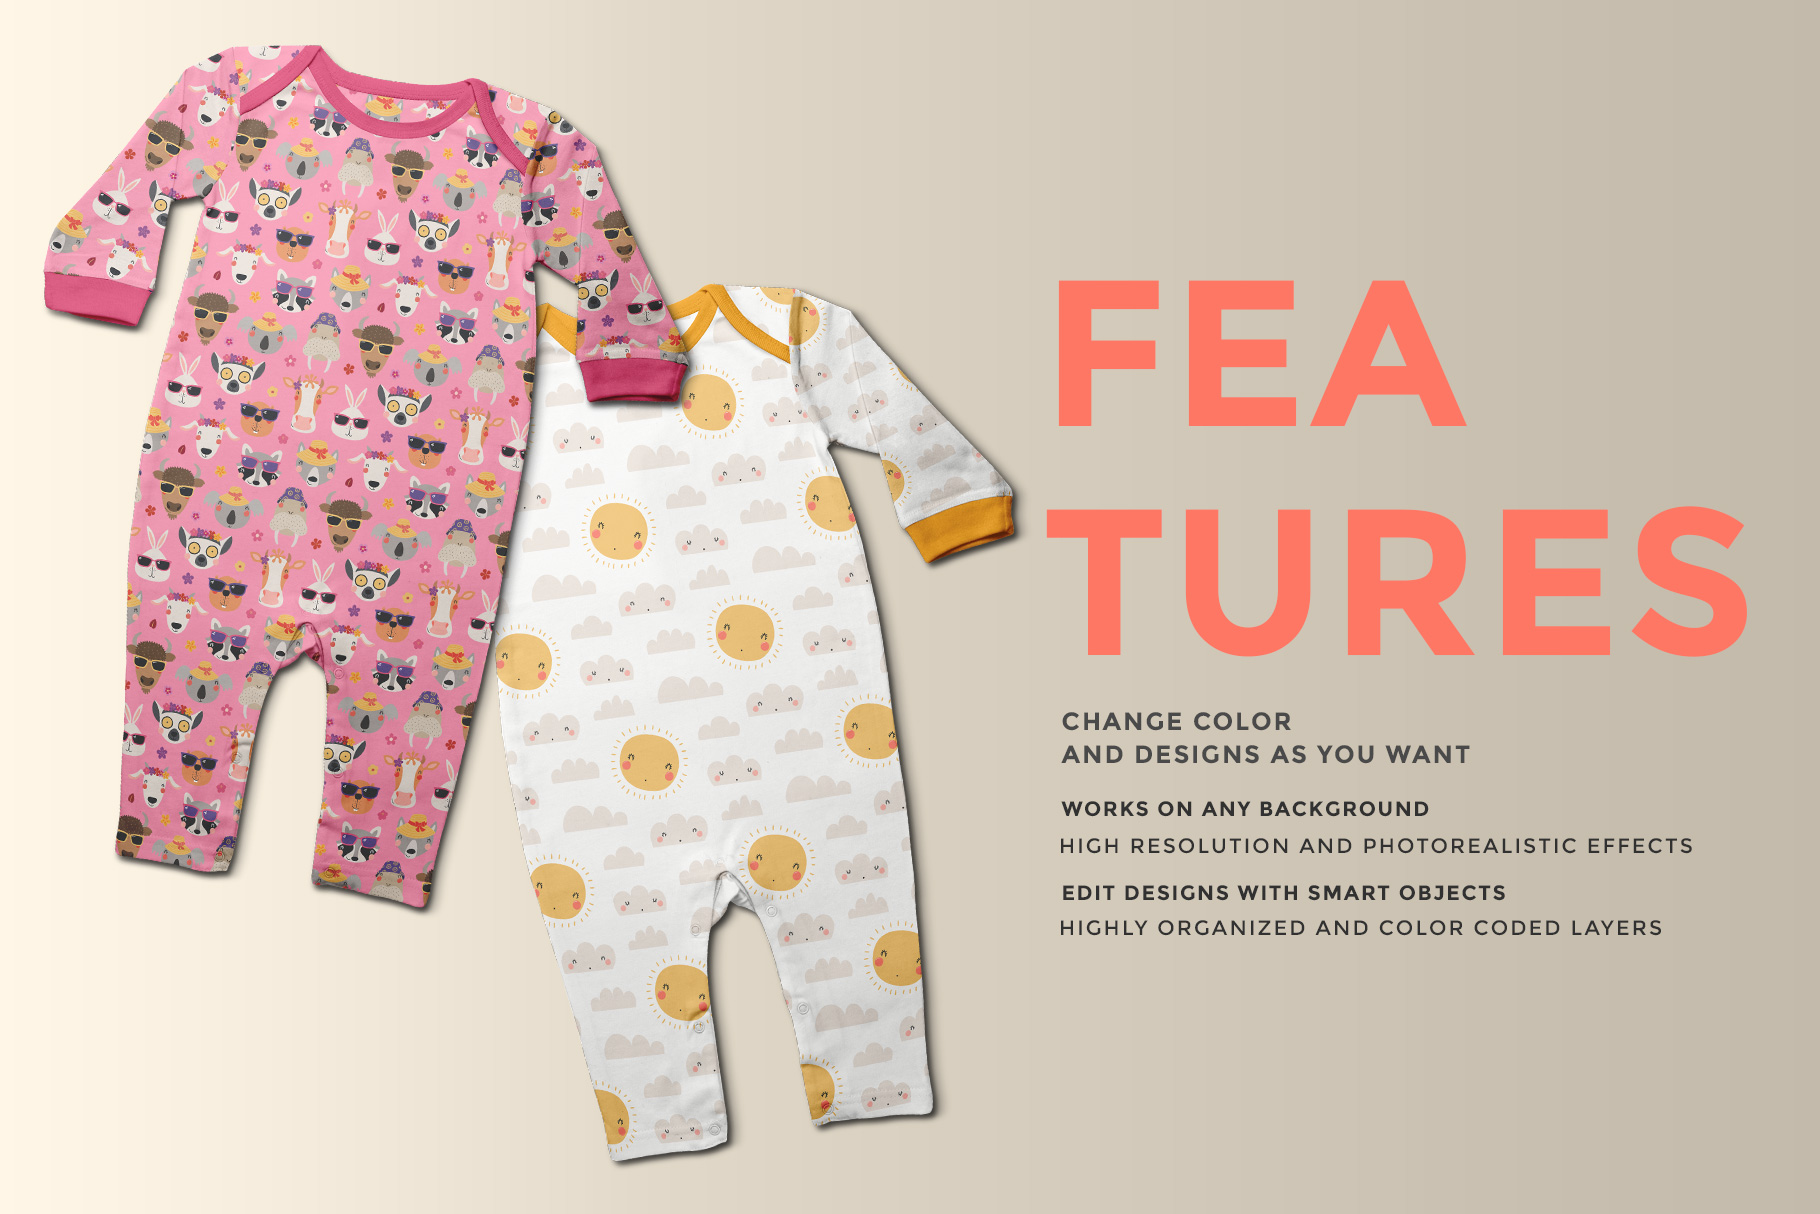 features of the top view kids quarter sleeve romper mockup